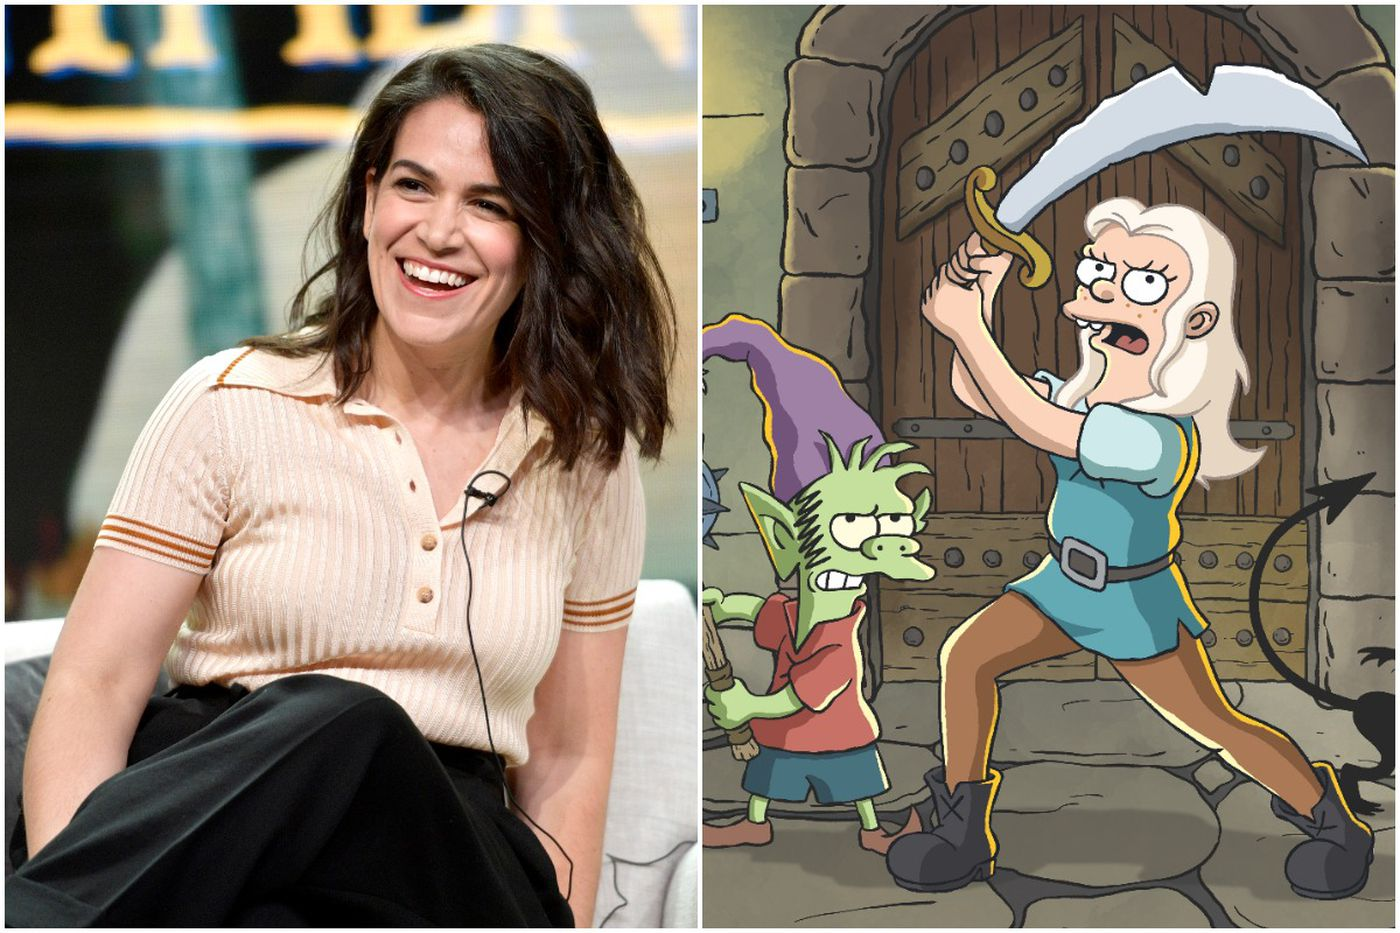 Wayne's Abbi Jacobson talks about voicing Matt Groening's 'Disenchantment' princess and planning 'Broad City' farewell